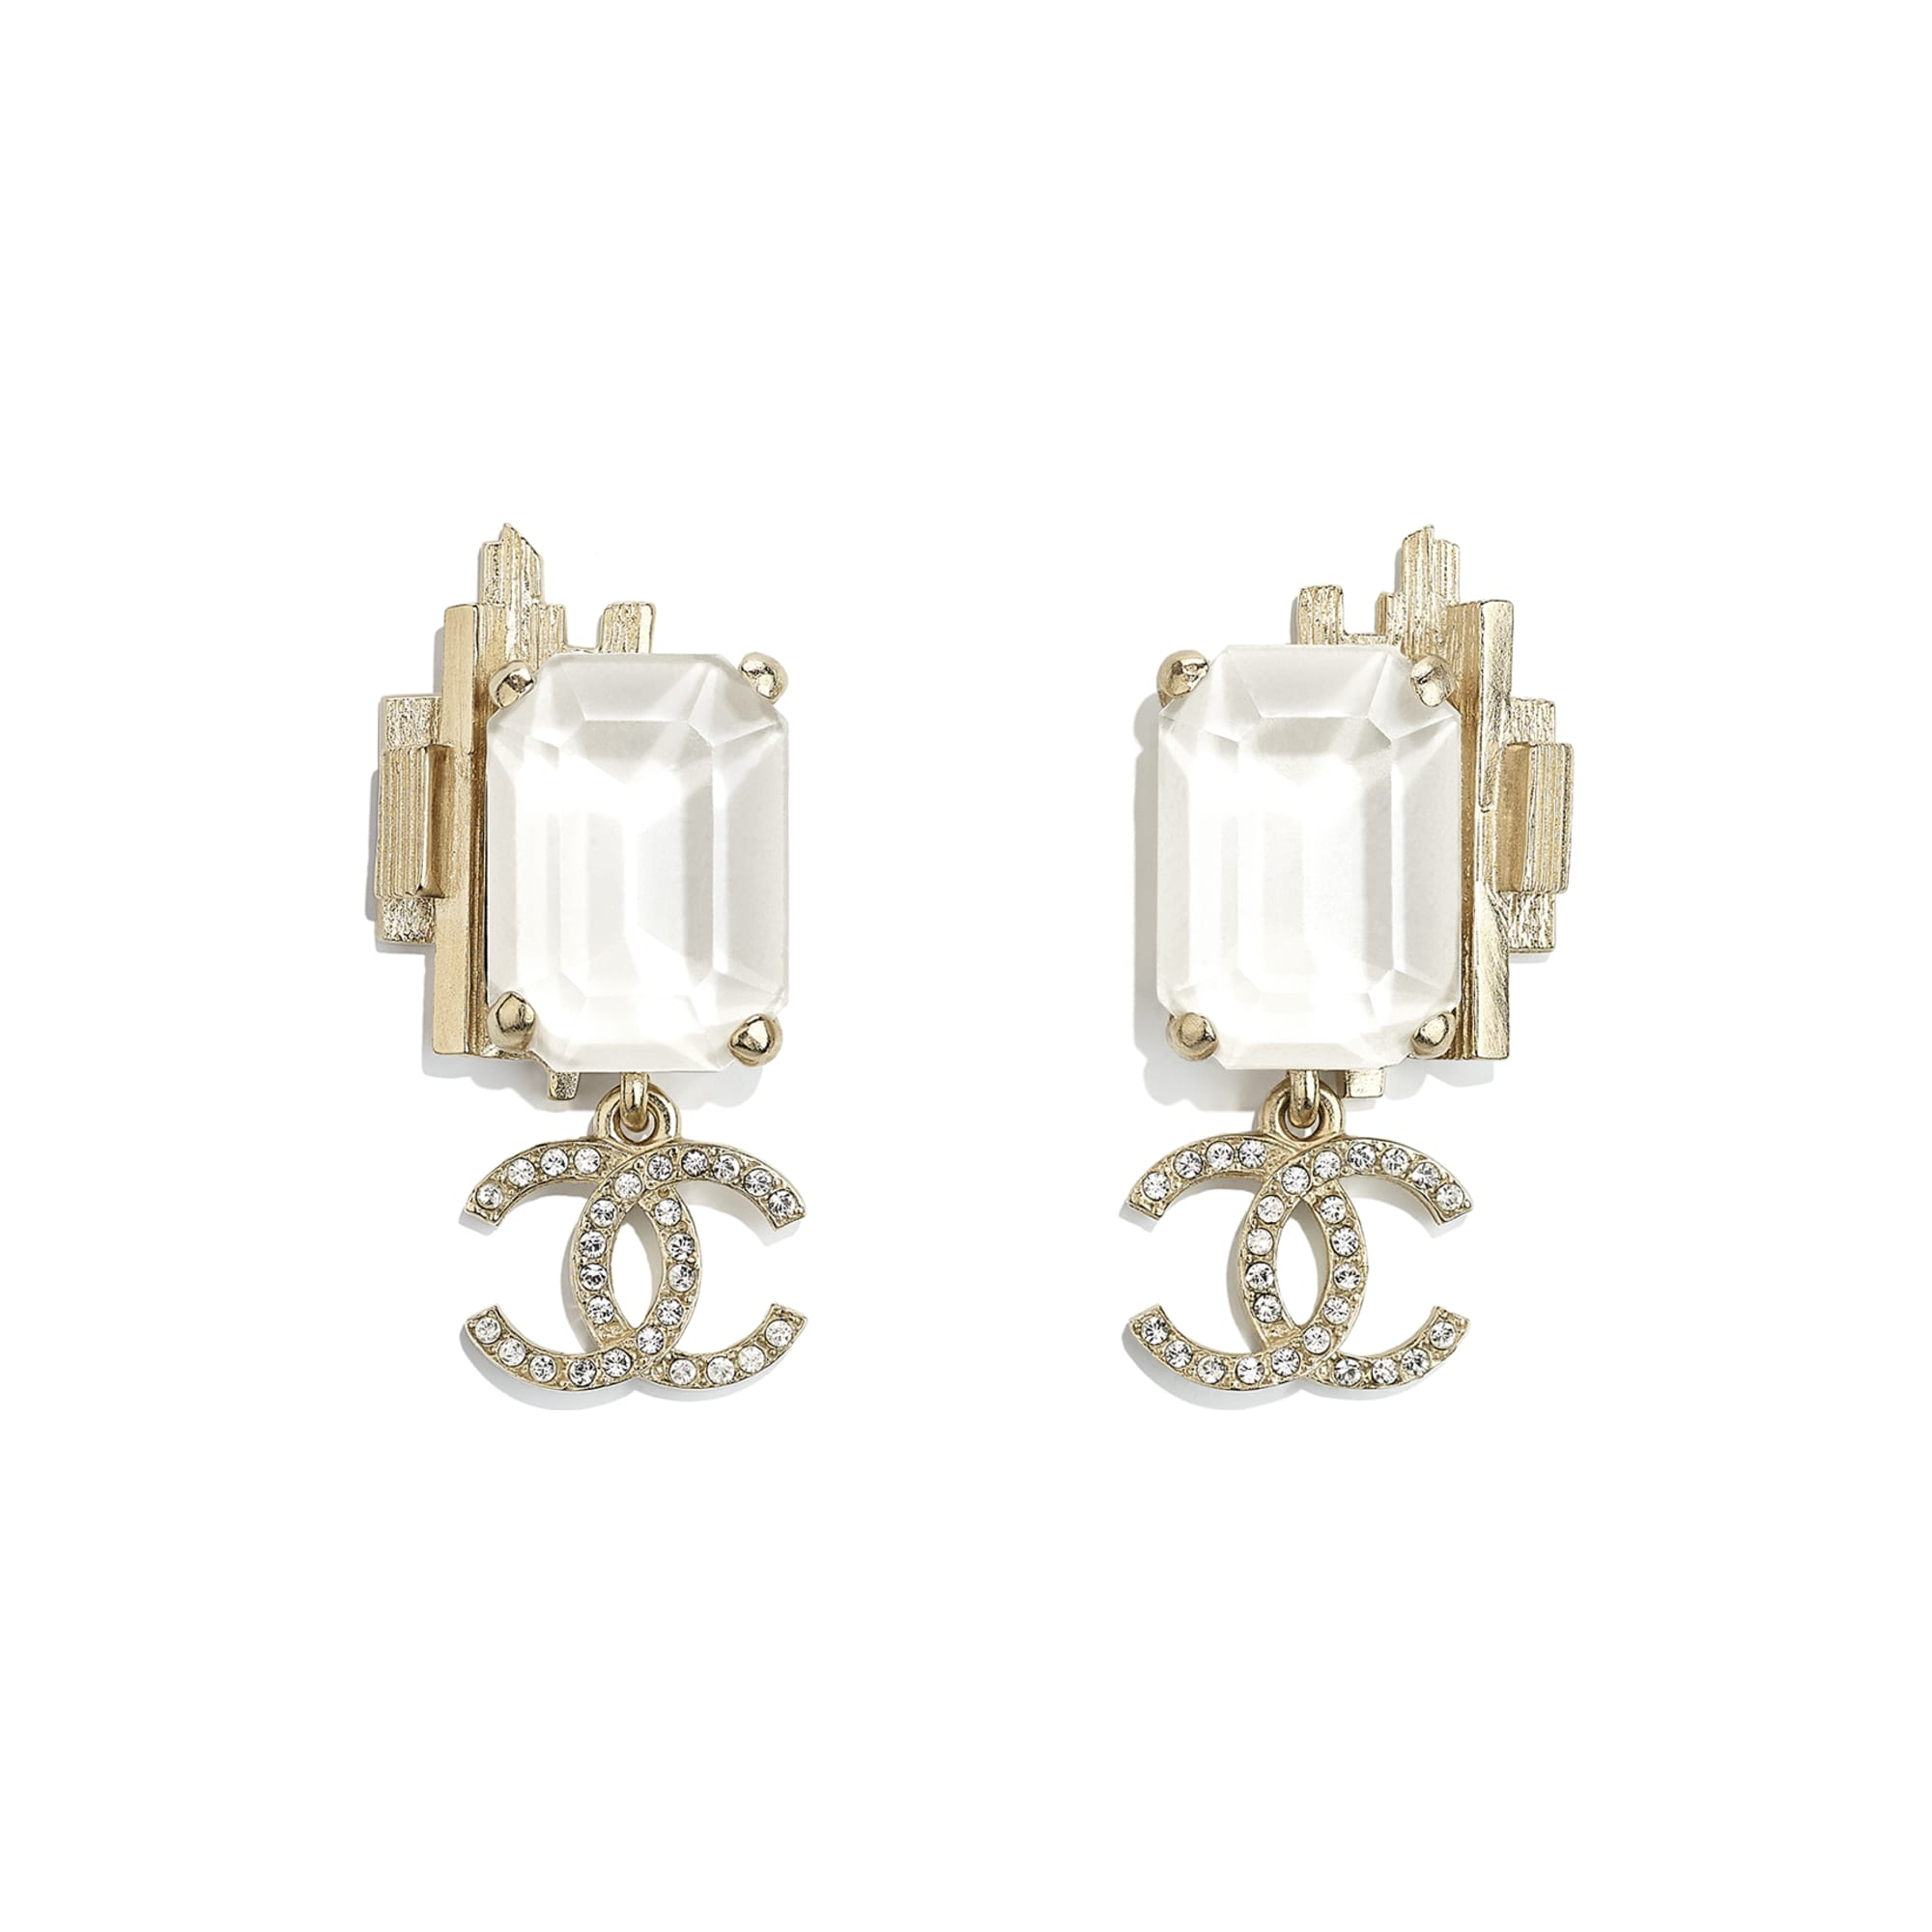 Earrings - Gold, White & Crystal - Metal & Strass - CHANEL - Default view - see standard sized version